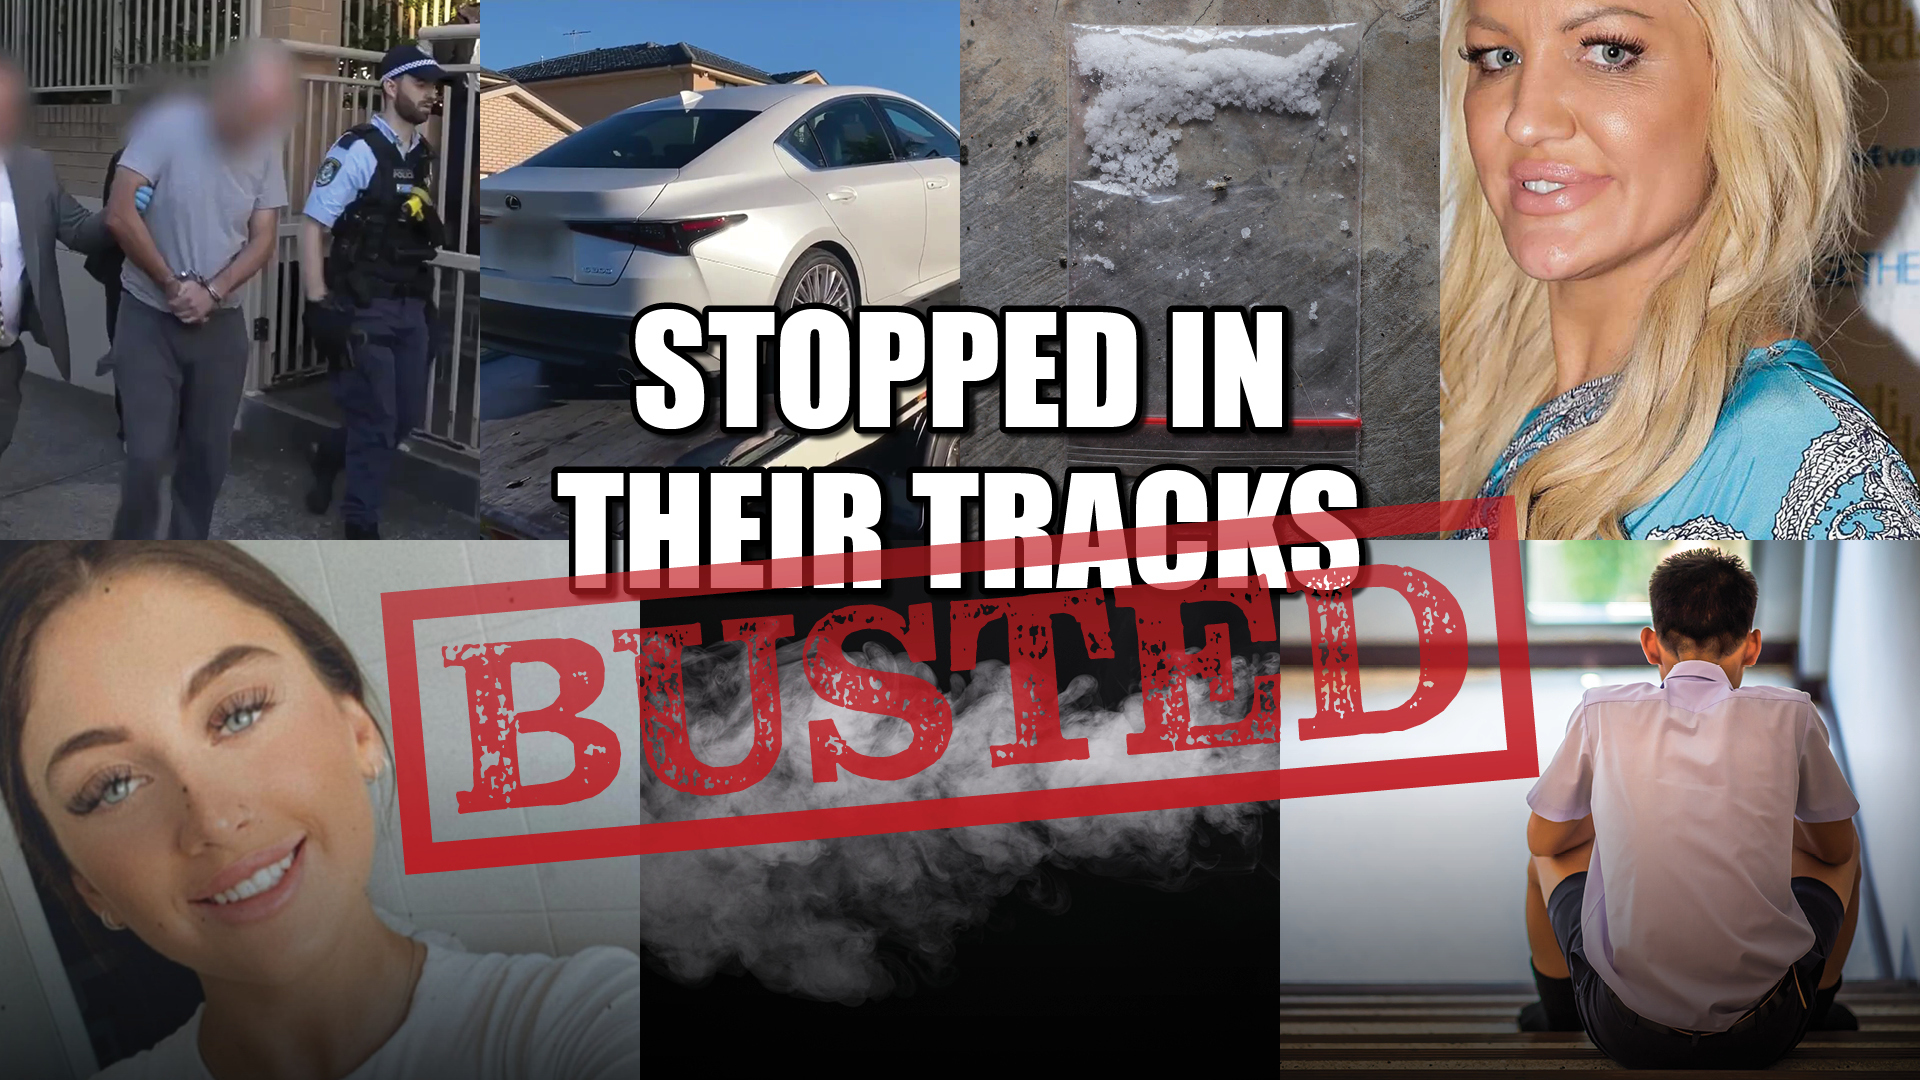 This week on BUSTED we are looking at the more smuggling of illicit products, whether it is meth or illicit tobacco. We also have some d-grade celebrities you might recognise charged with serious drug trafficking crimes. And some unfortunate stories involving children abusing nicotine and alcohol.